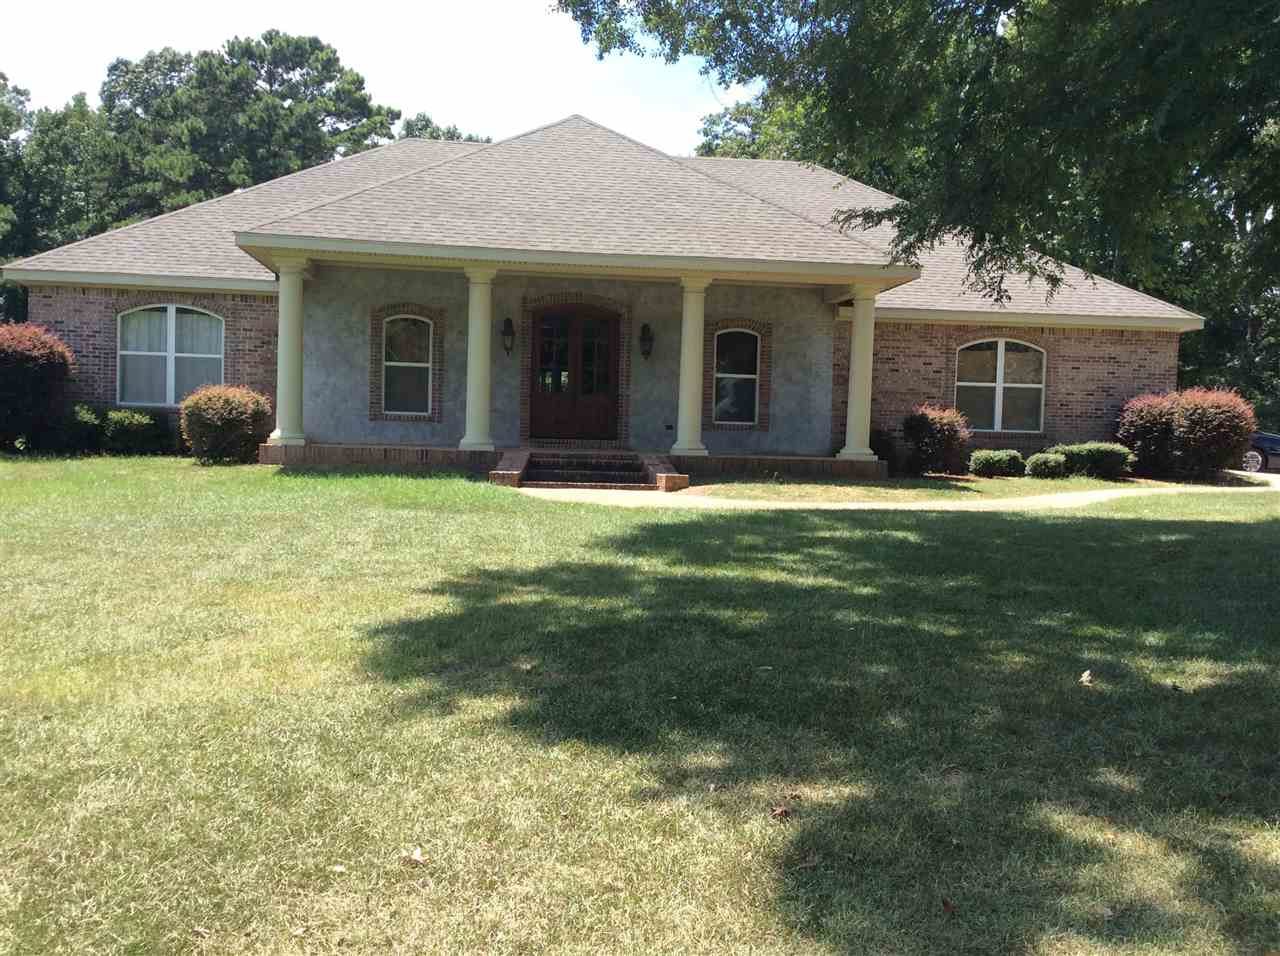 Real Estate for Sale, ListingId: 34550807, Terry,MS39170